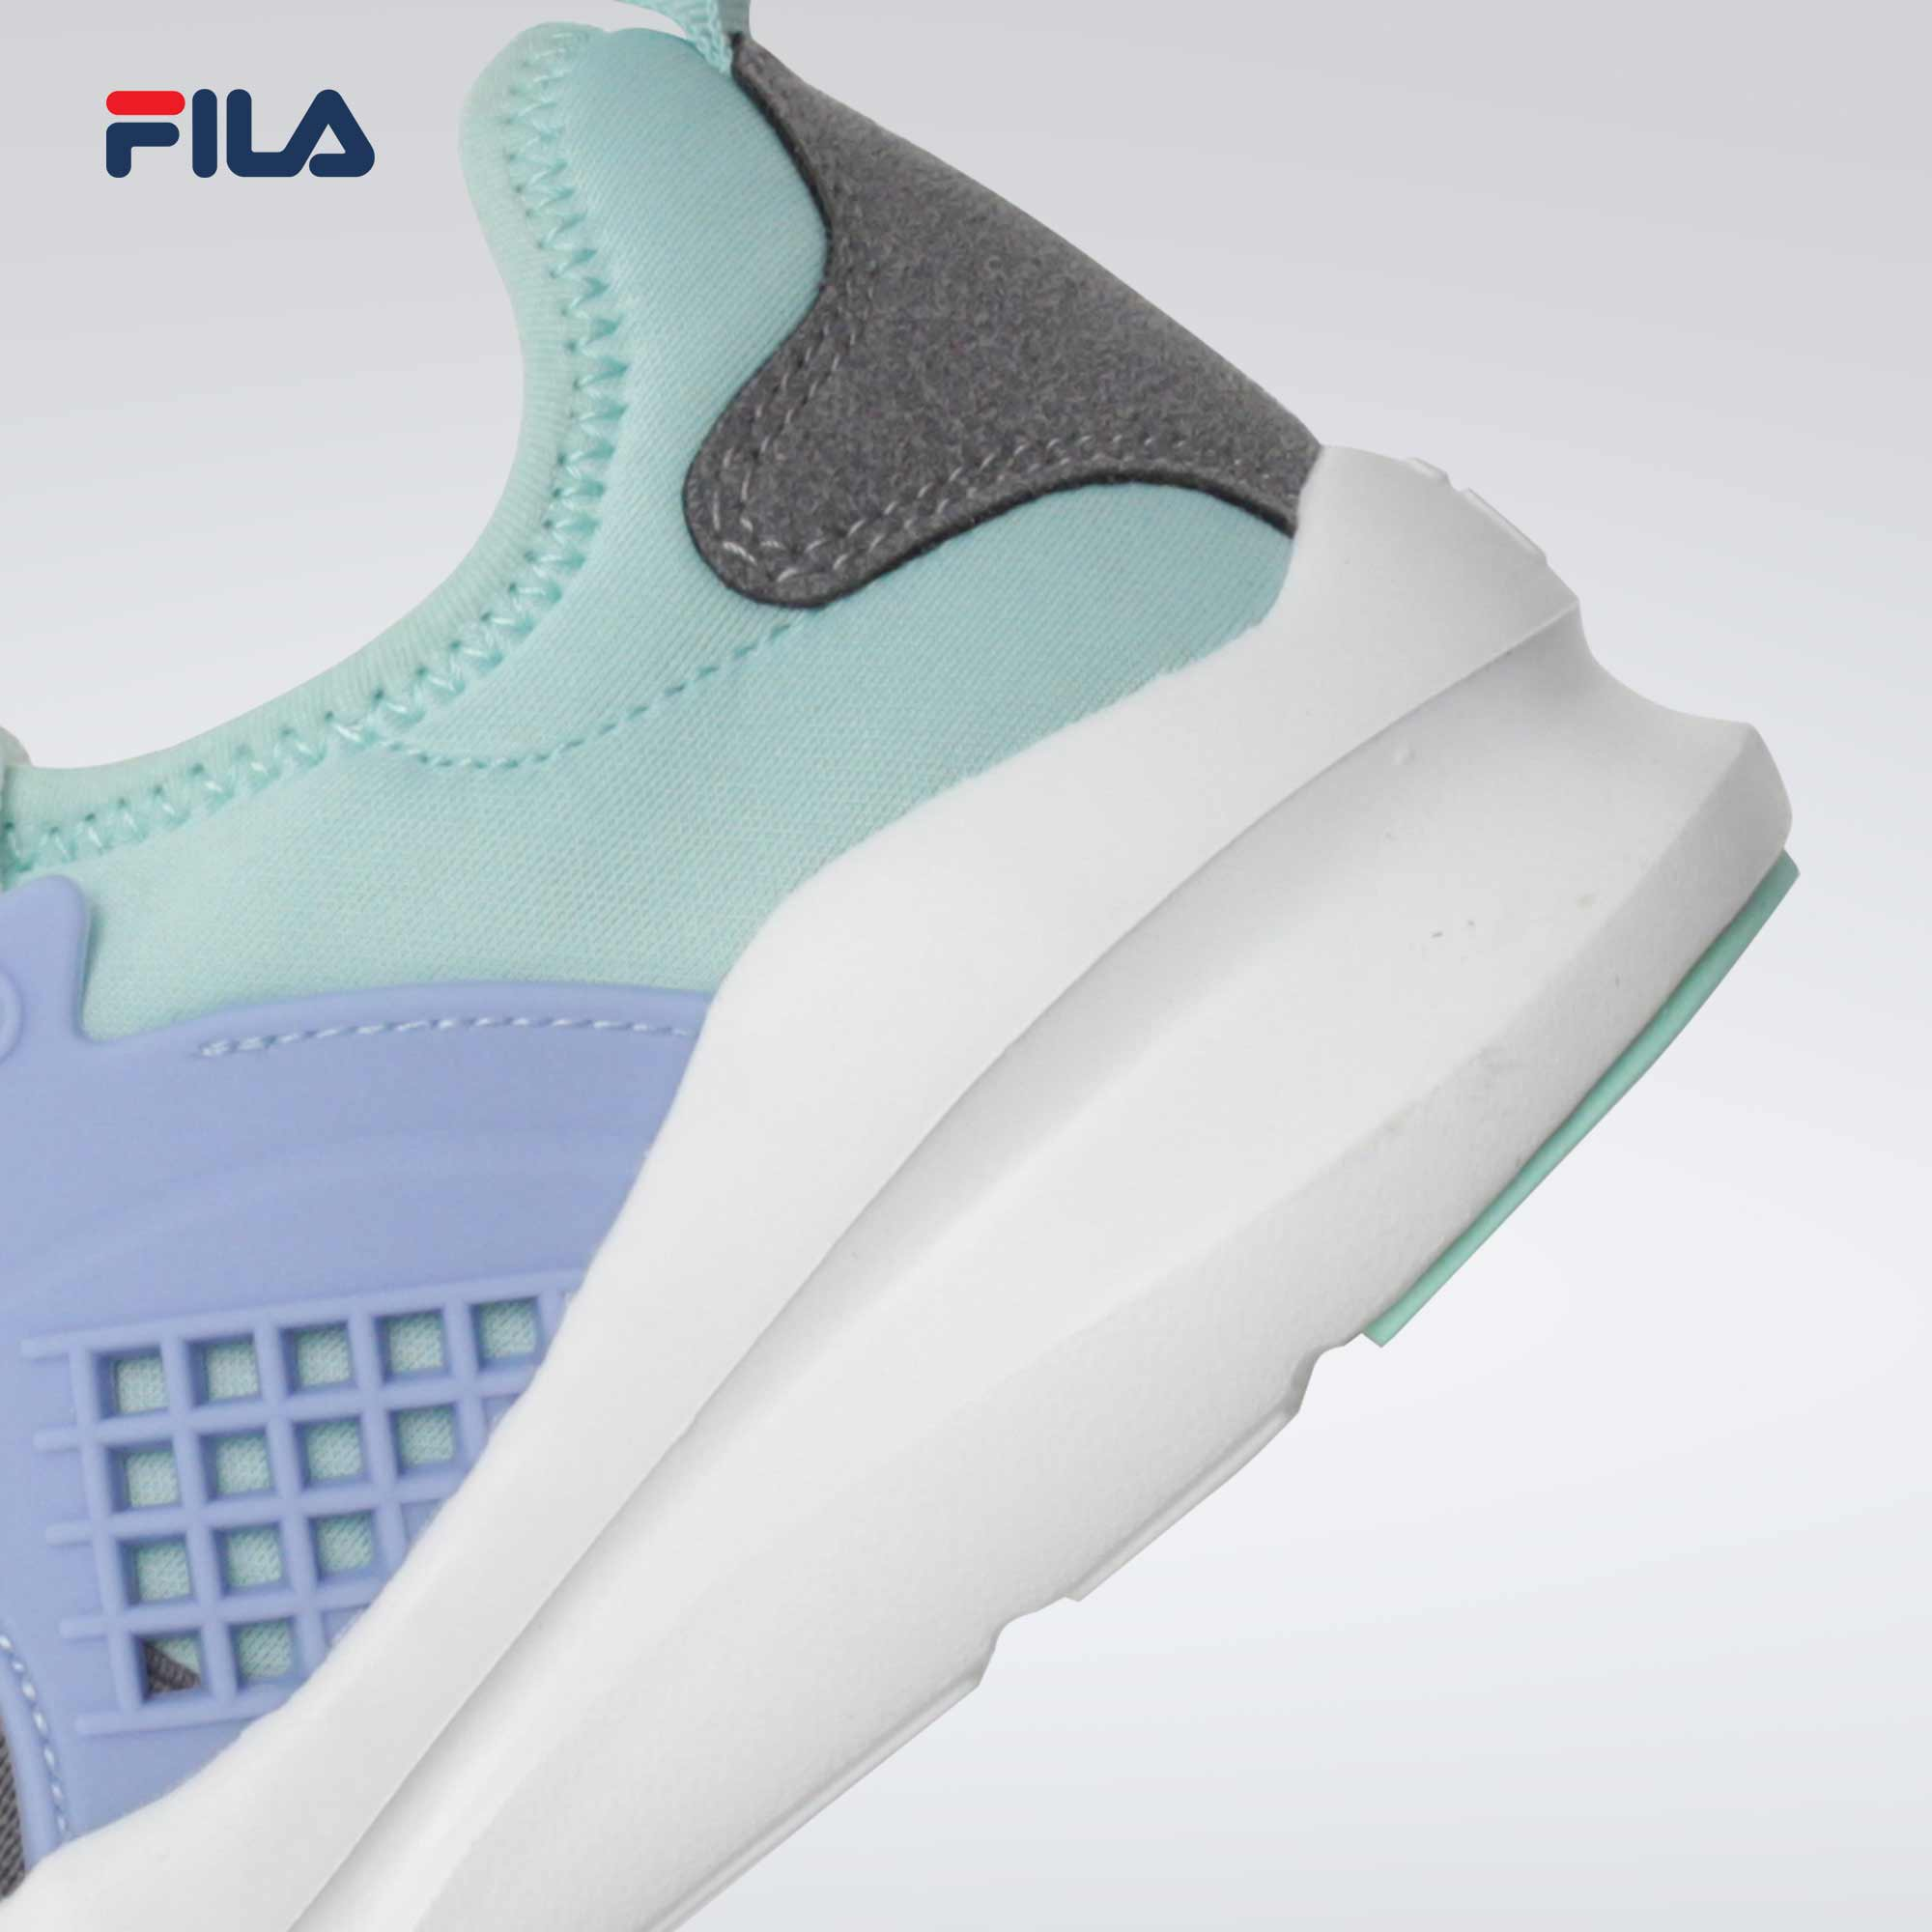 Fila Women's Performance Lytical Sneakers (GRAY/PP/GREEN)